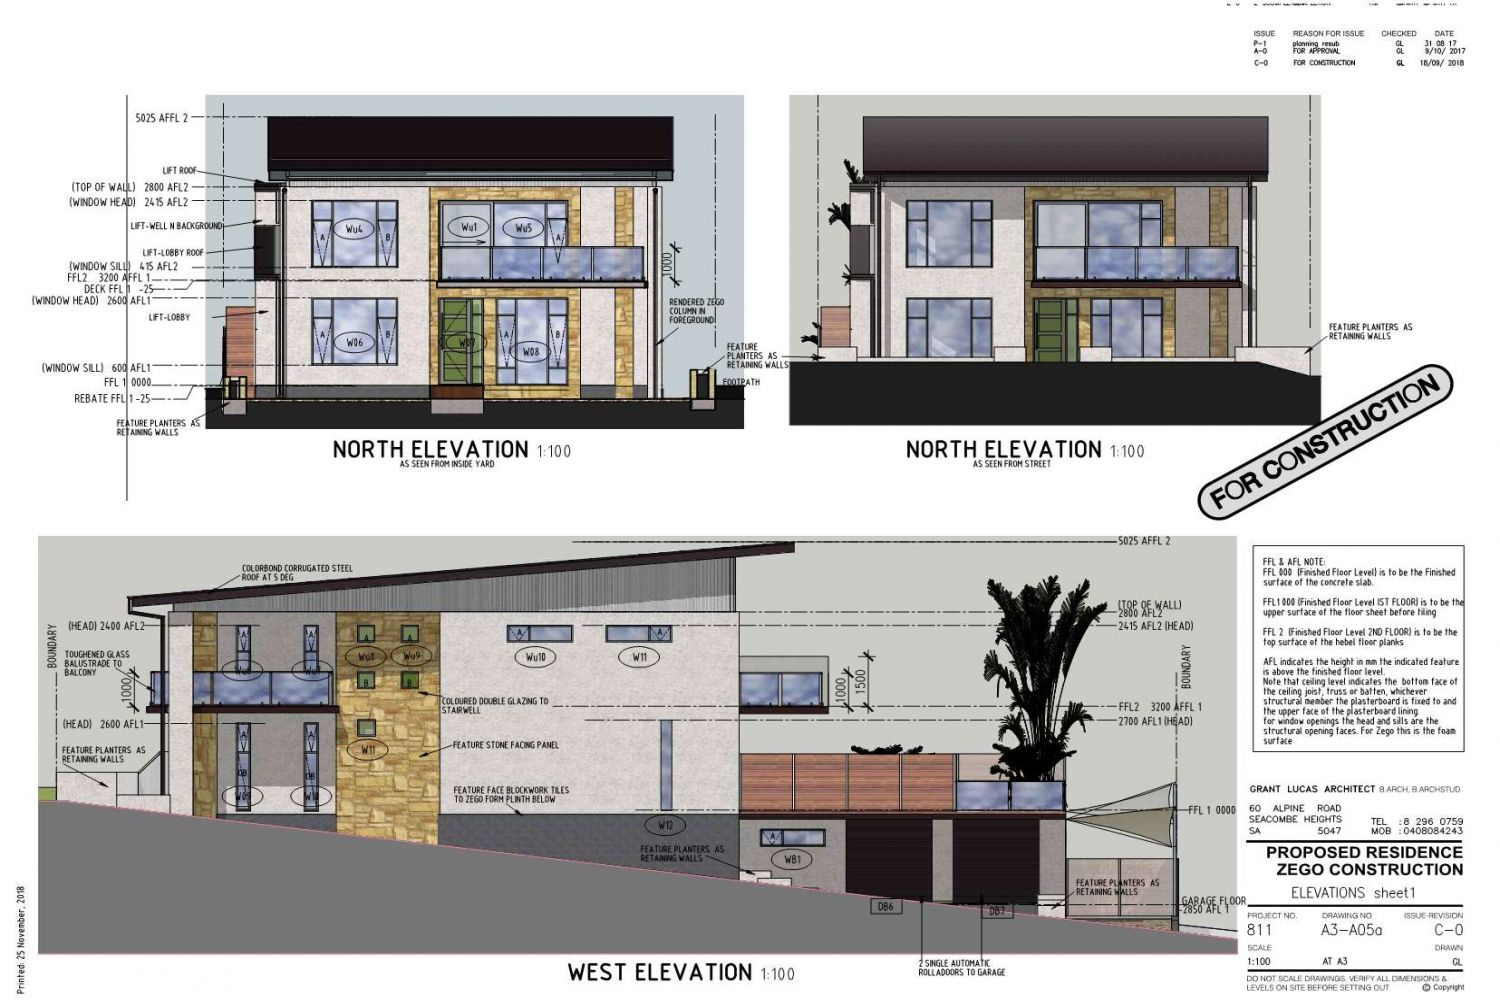 Owner Builder Zego Construction  2 storey Home at Port Noarlunga: Working Drawings Sheet 9  Elevations